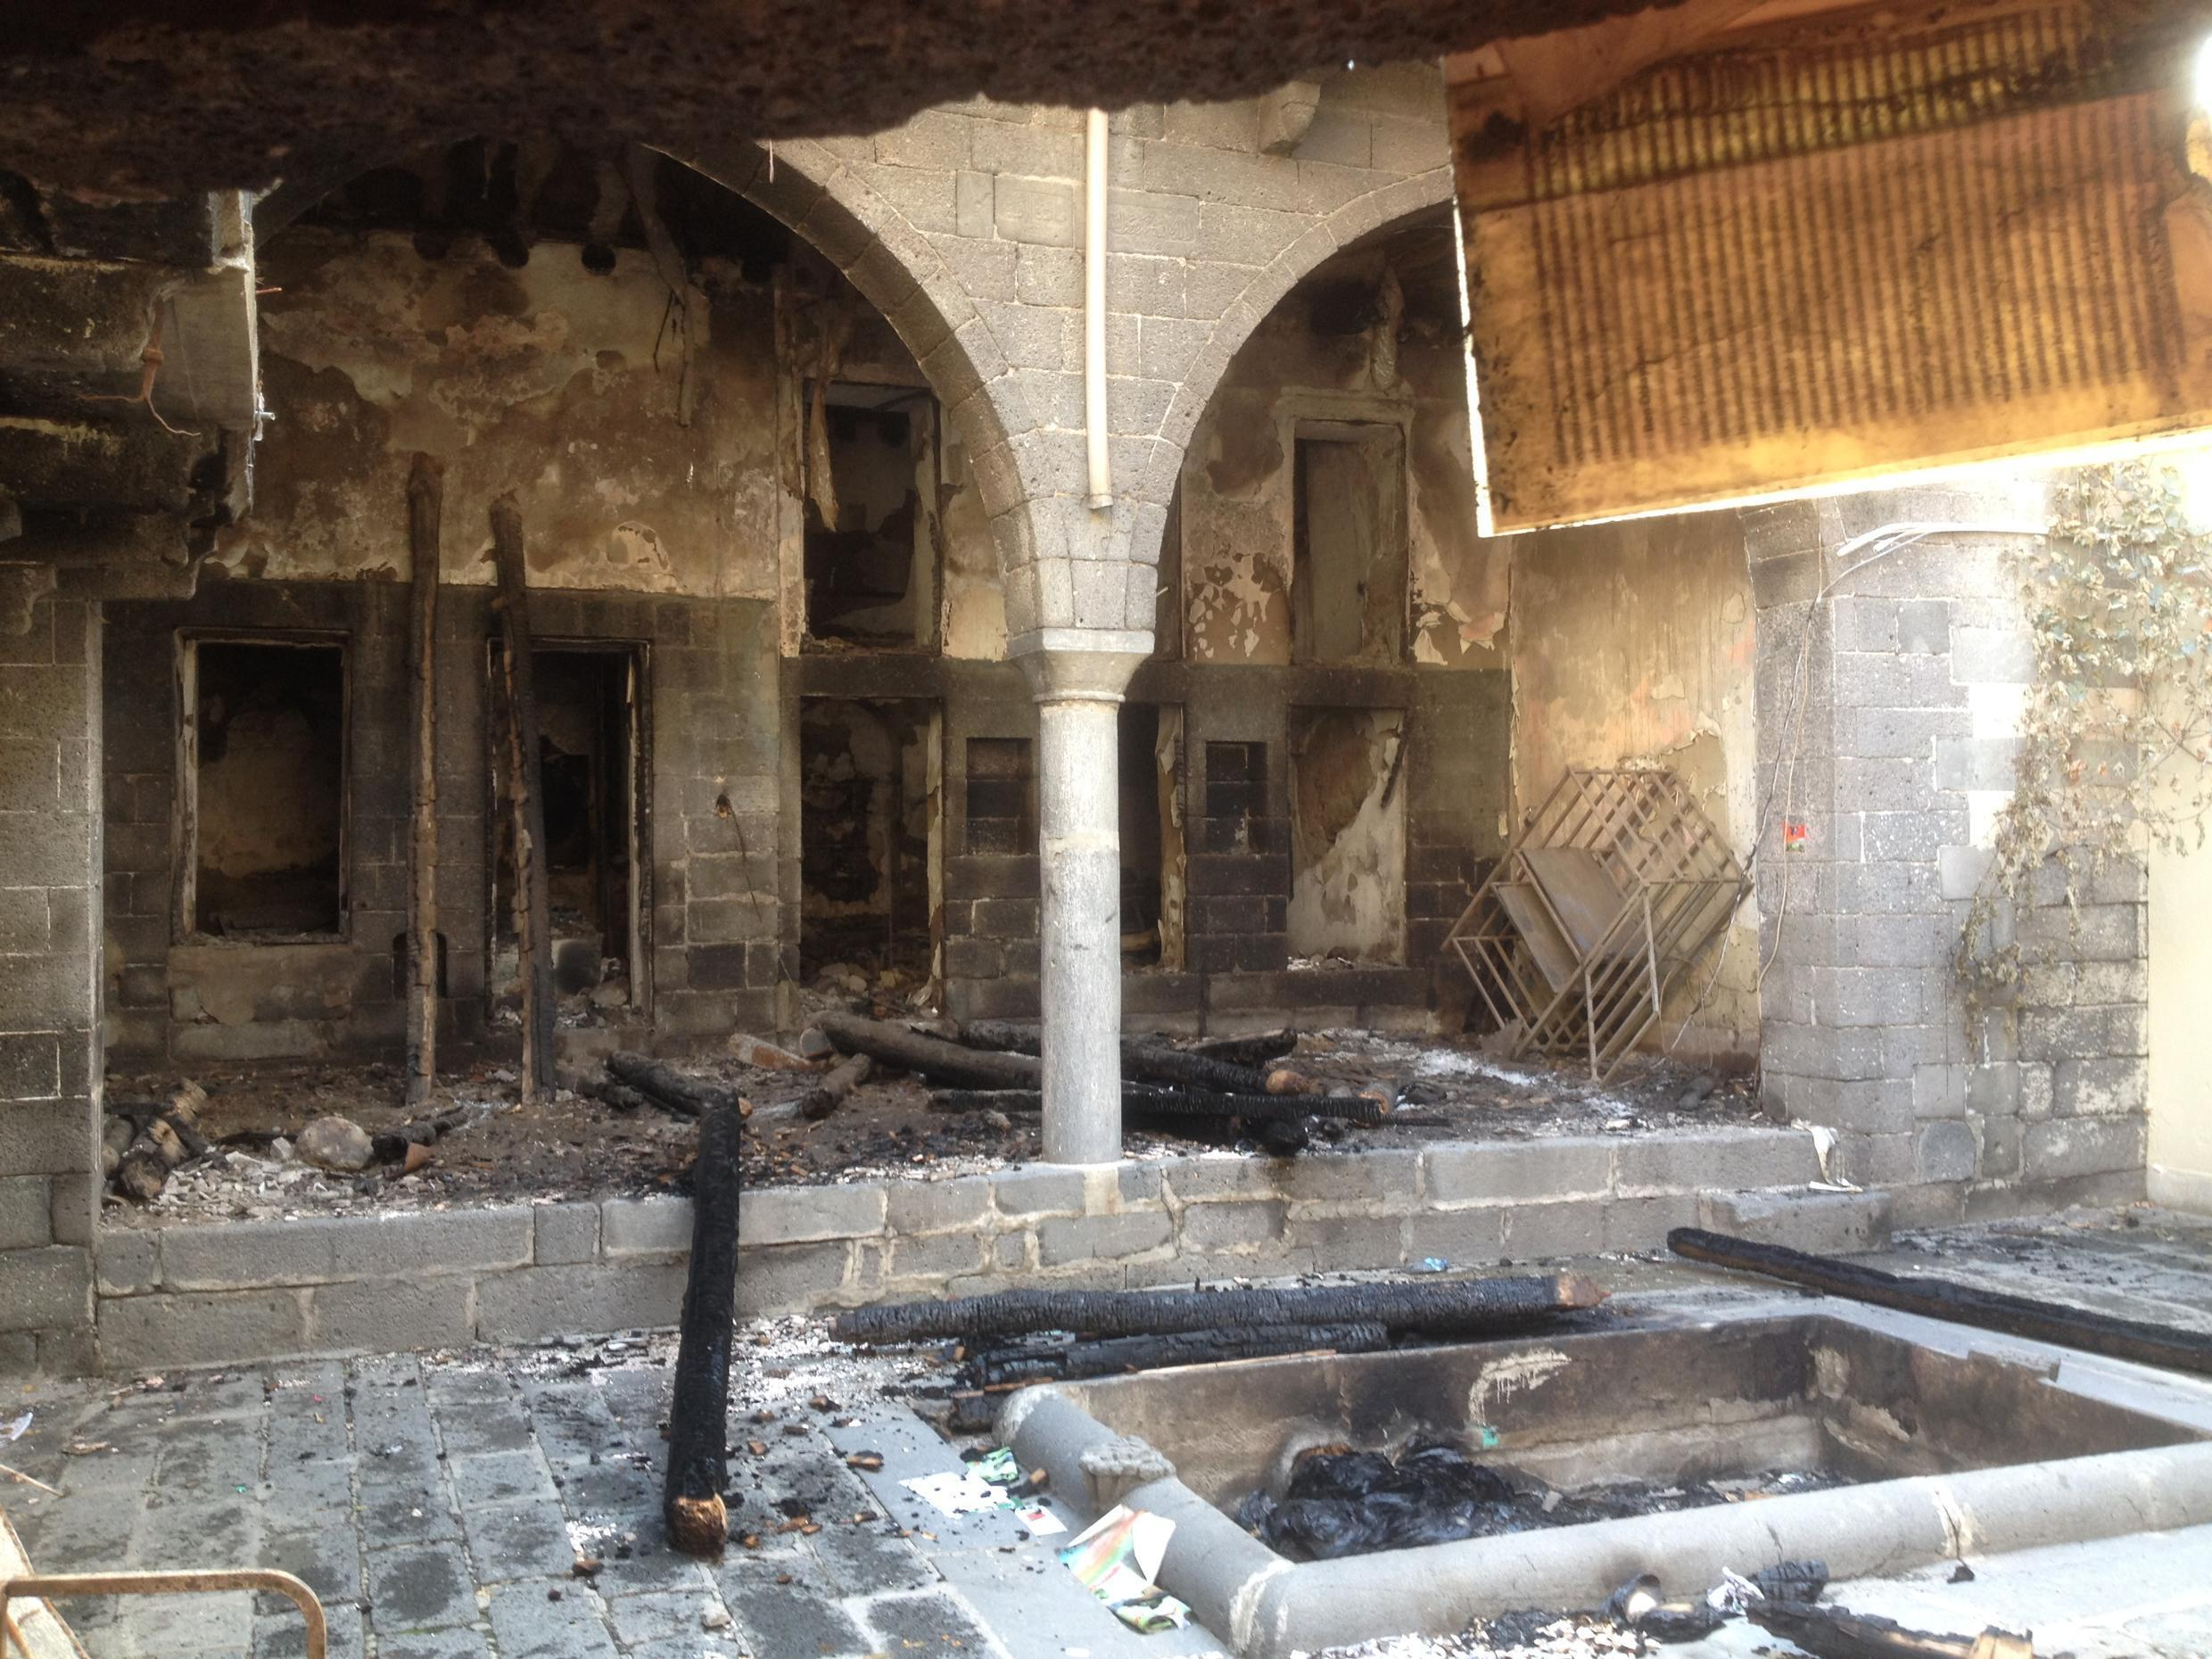 The building where Kurds declared an assembly destroyed in the military offensive.